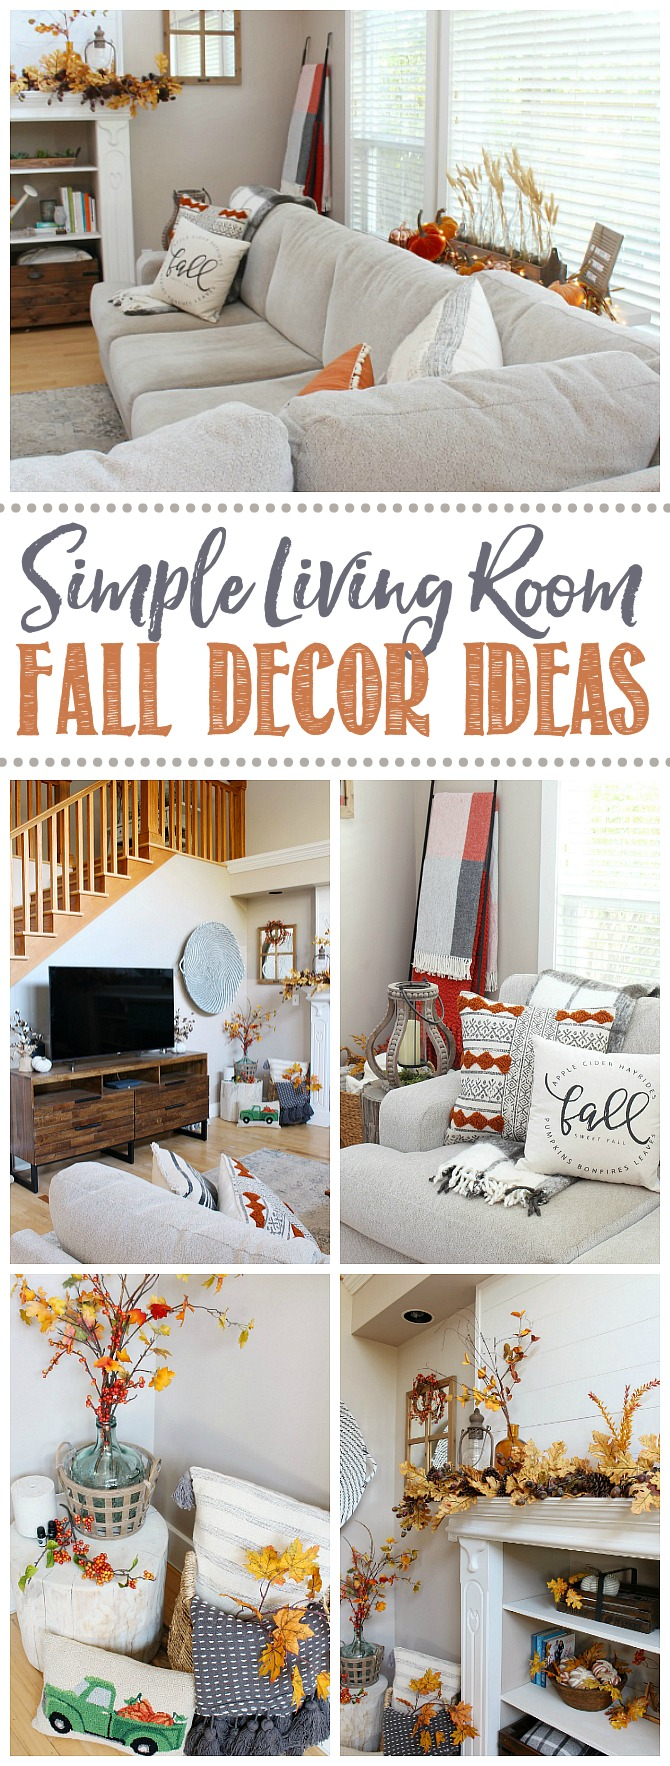 Beautiful and simple ideas to decorate your living room for fall.